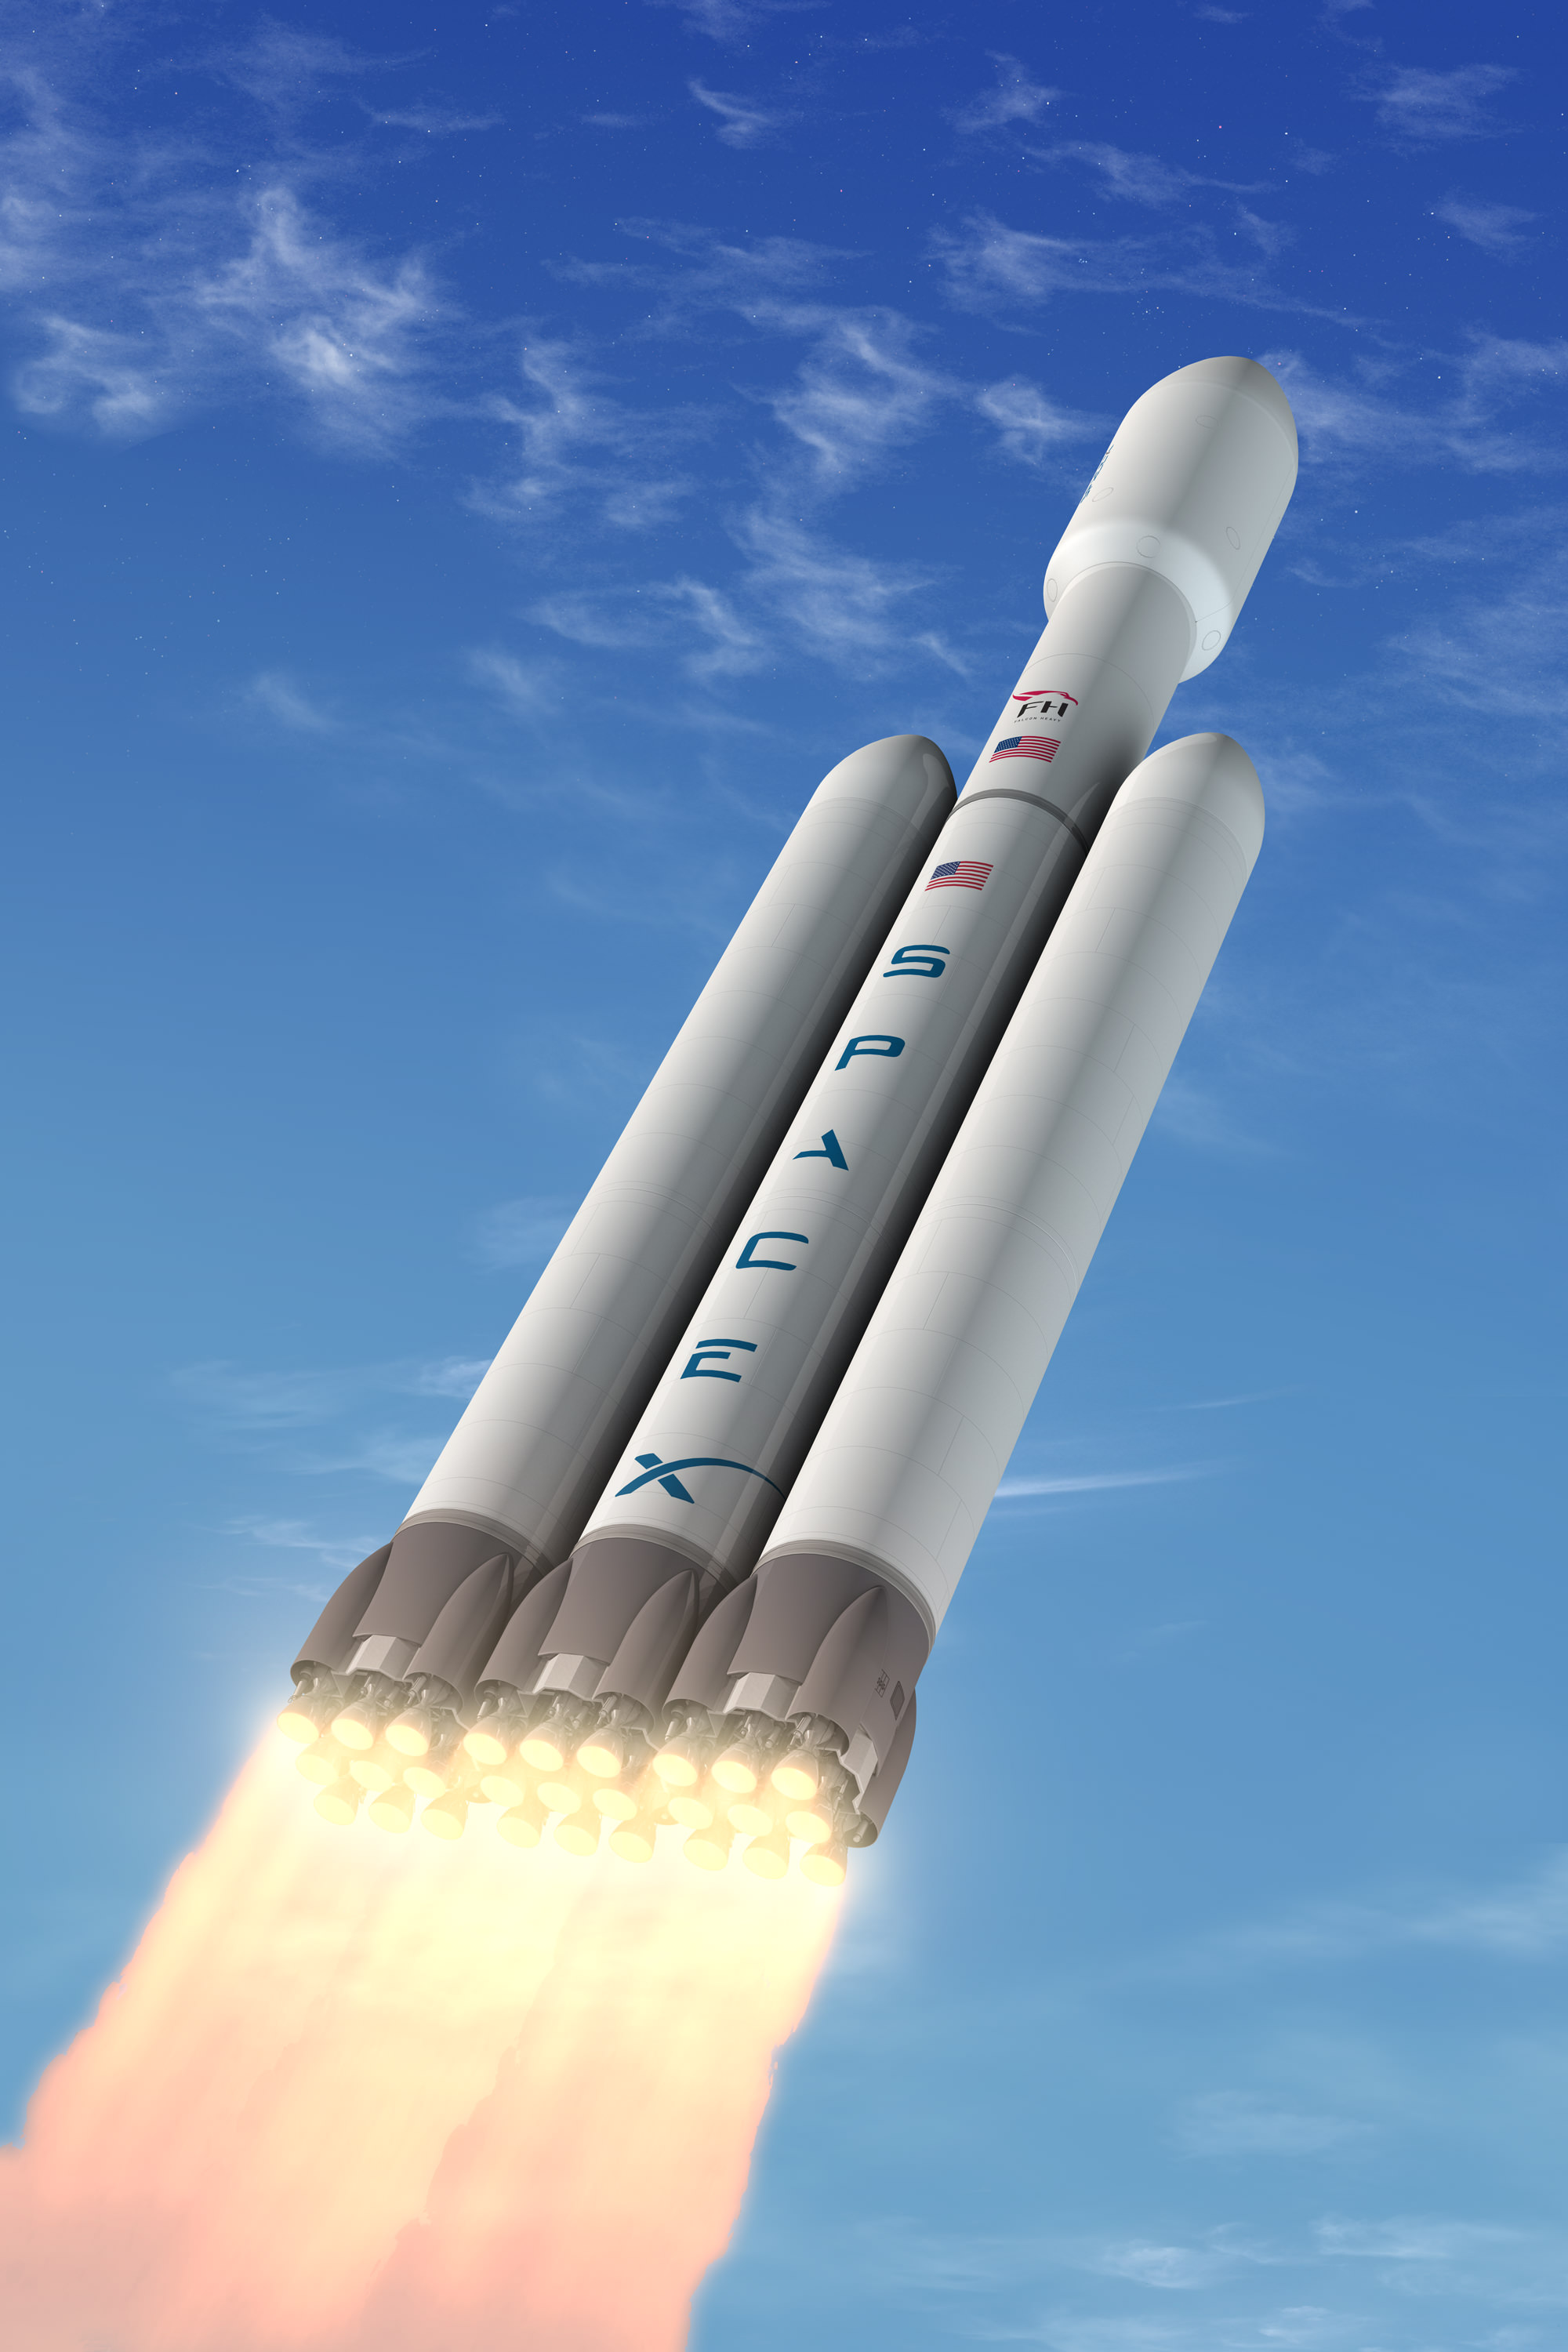 The Falcon Heavy Rocket will be the most capable rocket in the world.  only exceeded by the American Saturn V moon rocket which landed the first astronauts on the lunar surface in 1969.  Credit: SpaceX